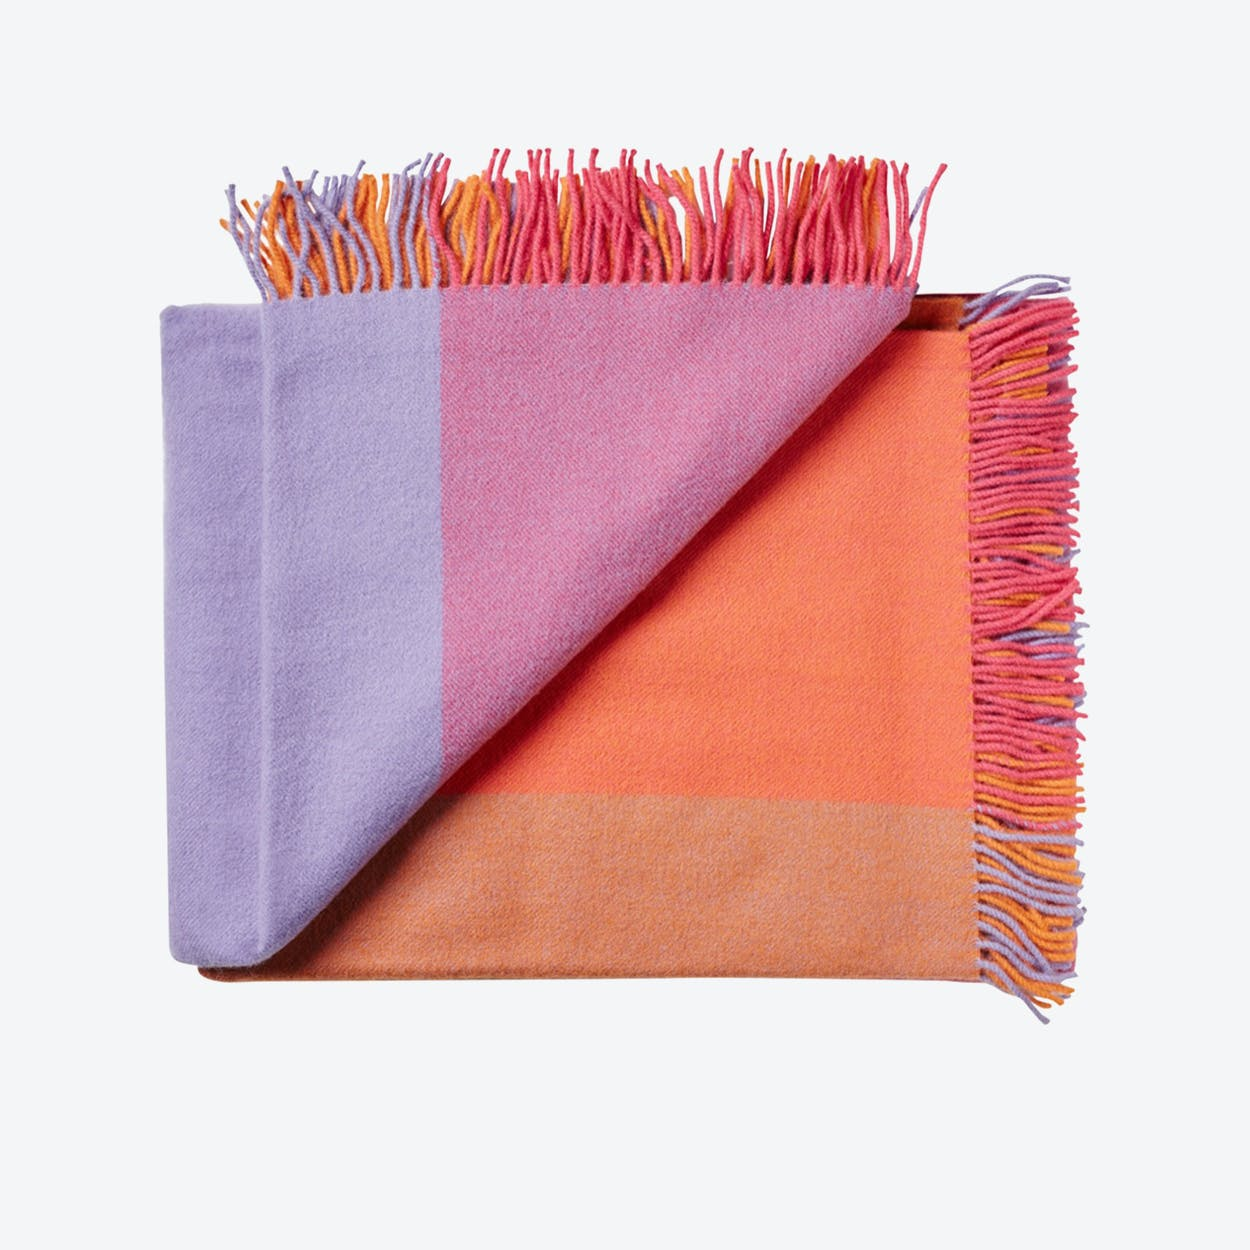 Miami Wool Throw in Pink